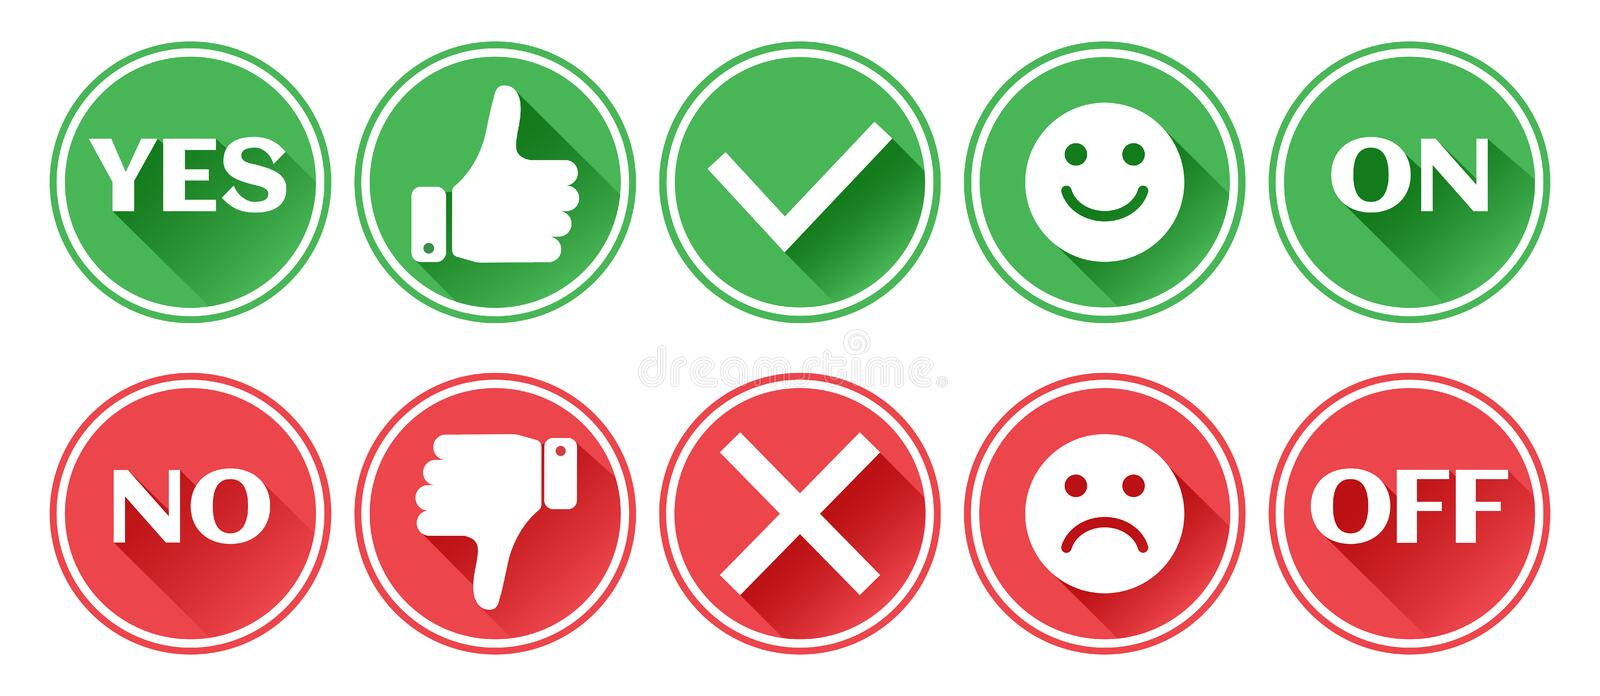 Set of red and green icons buttons. Thumb up and down. Like and dislike. Confirmation and rejection. Yes and No. On and Off. vector illustration